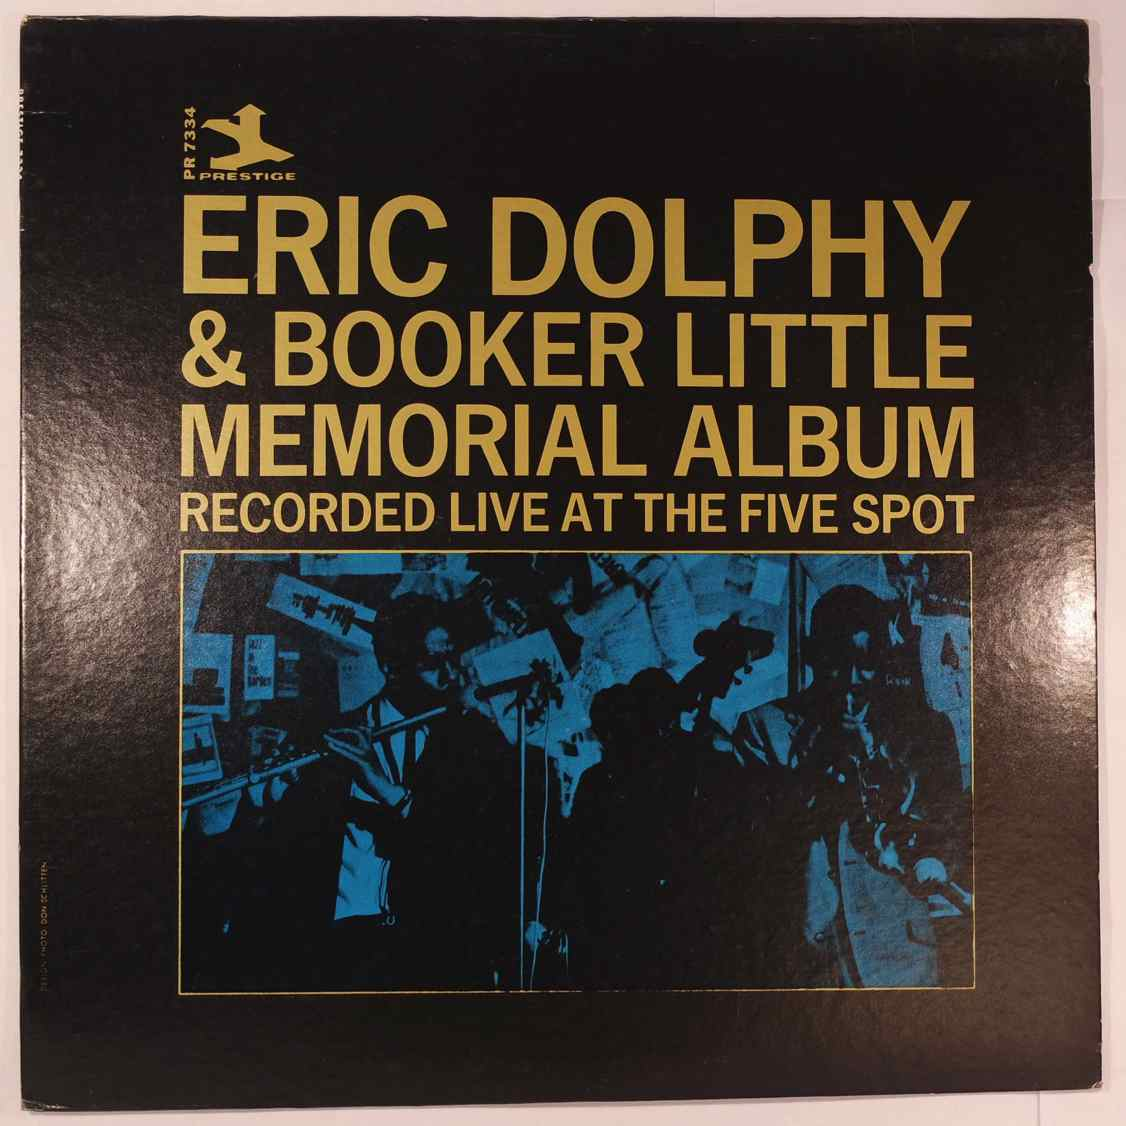 ERIC DOLPHY & BOOKER LITTLE - Memorial Album (Recorded Live At The Five Spot) - LP